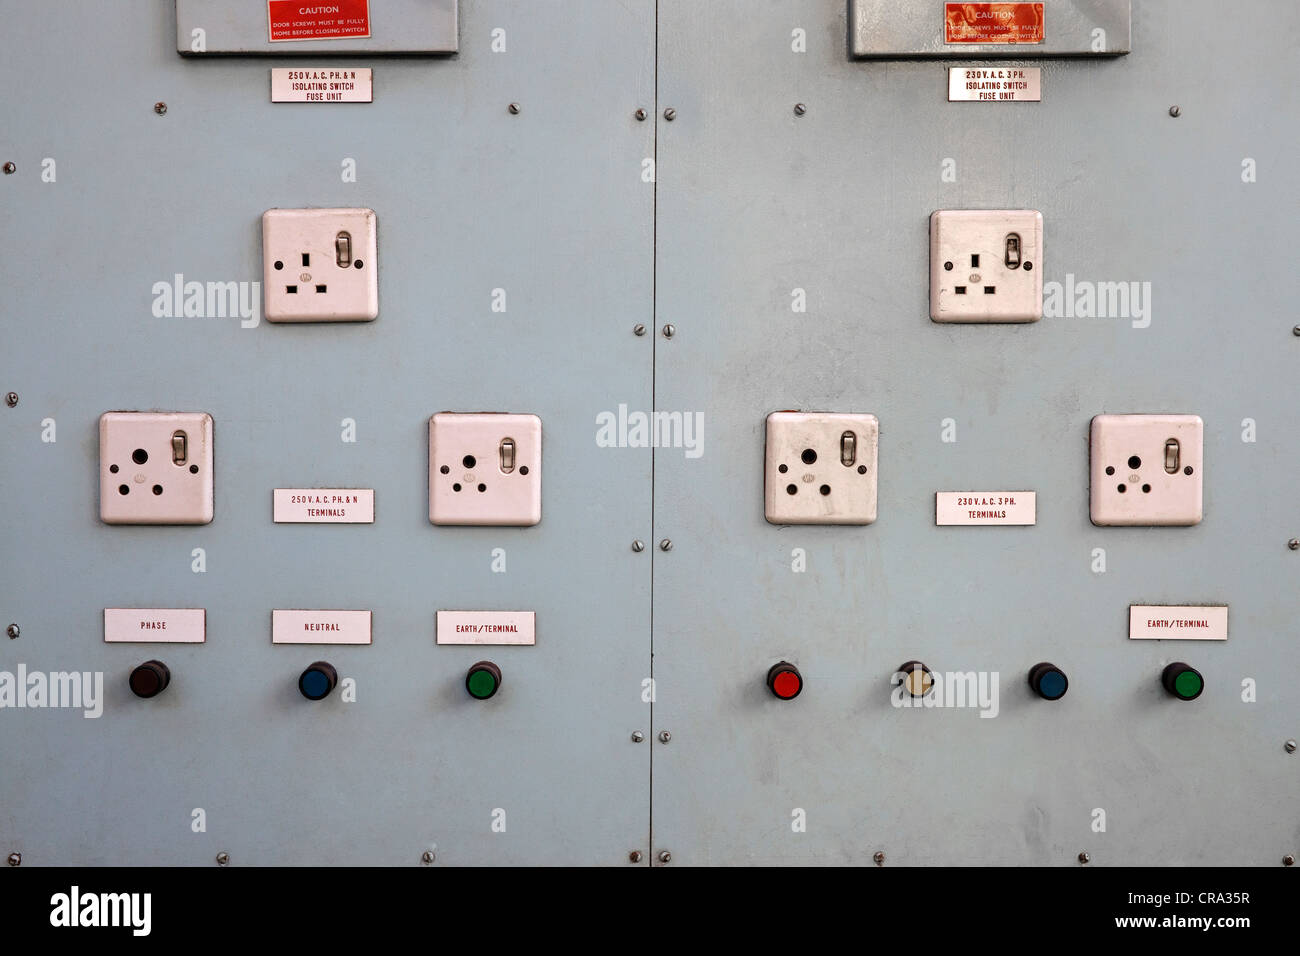 Control panel of 13 amp switches and buttons - Stock Image